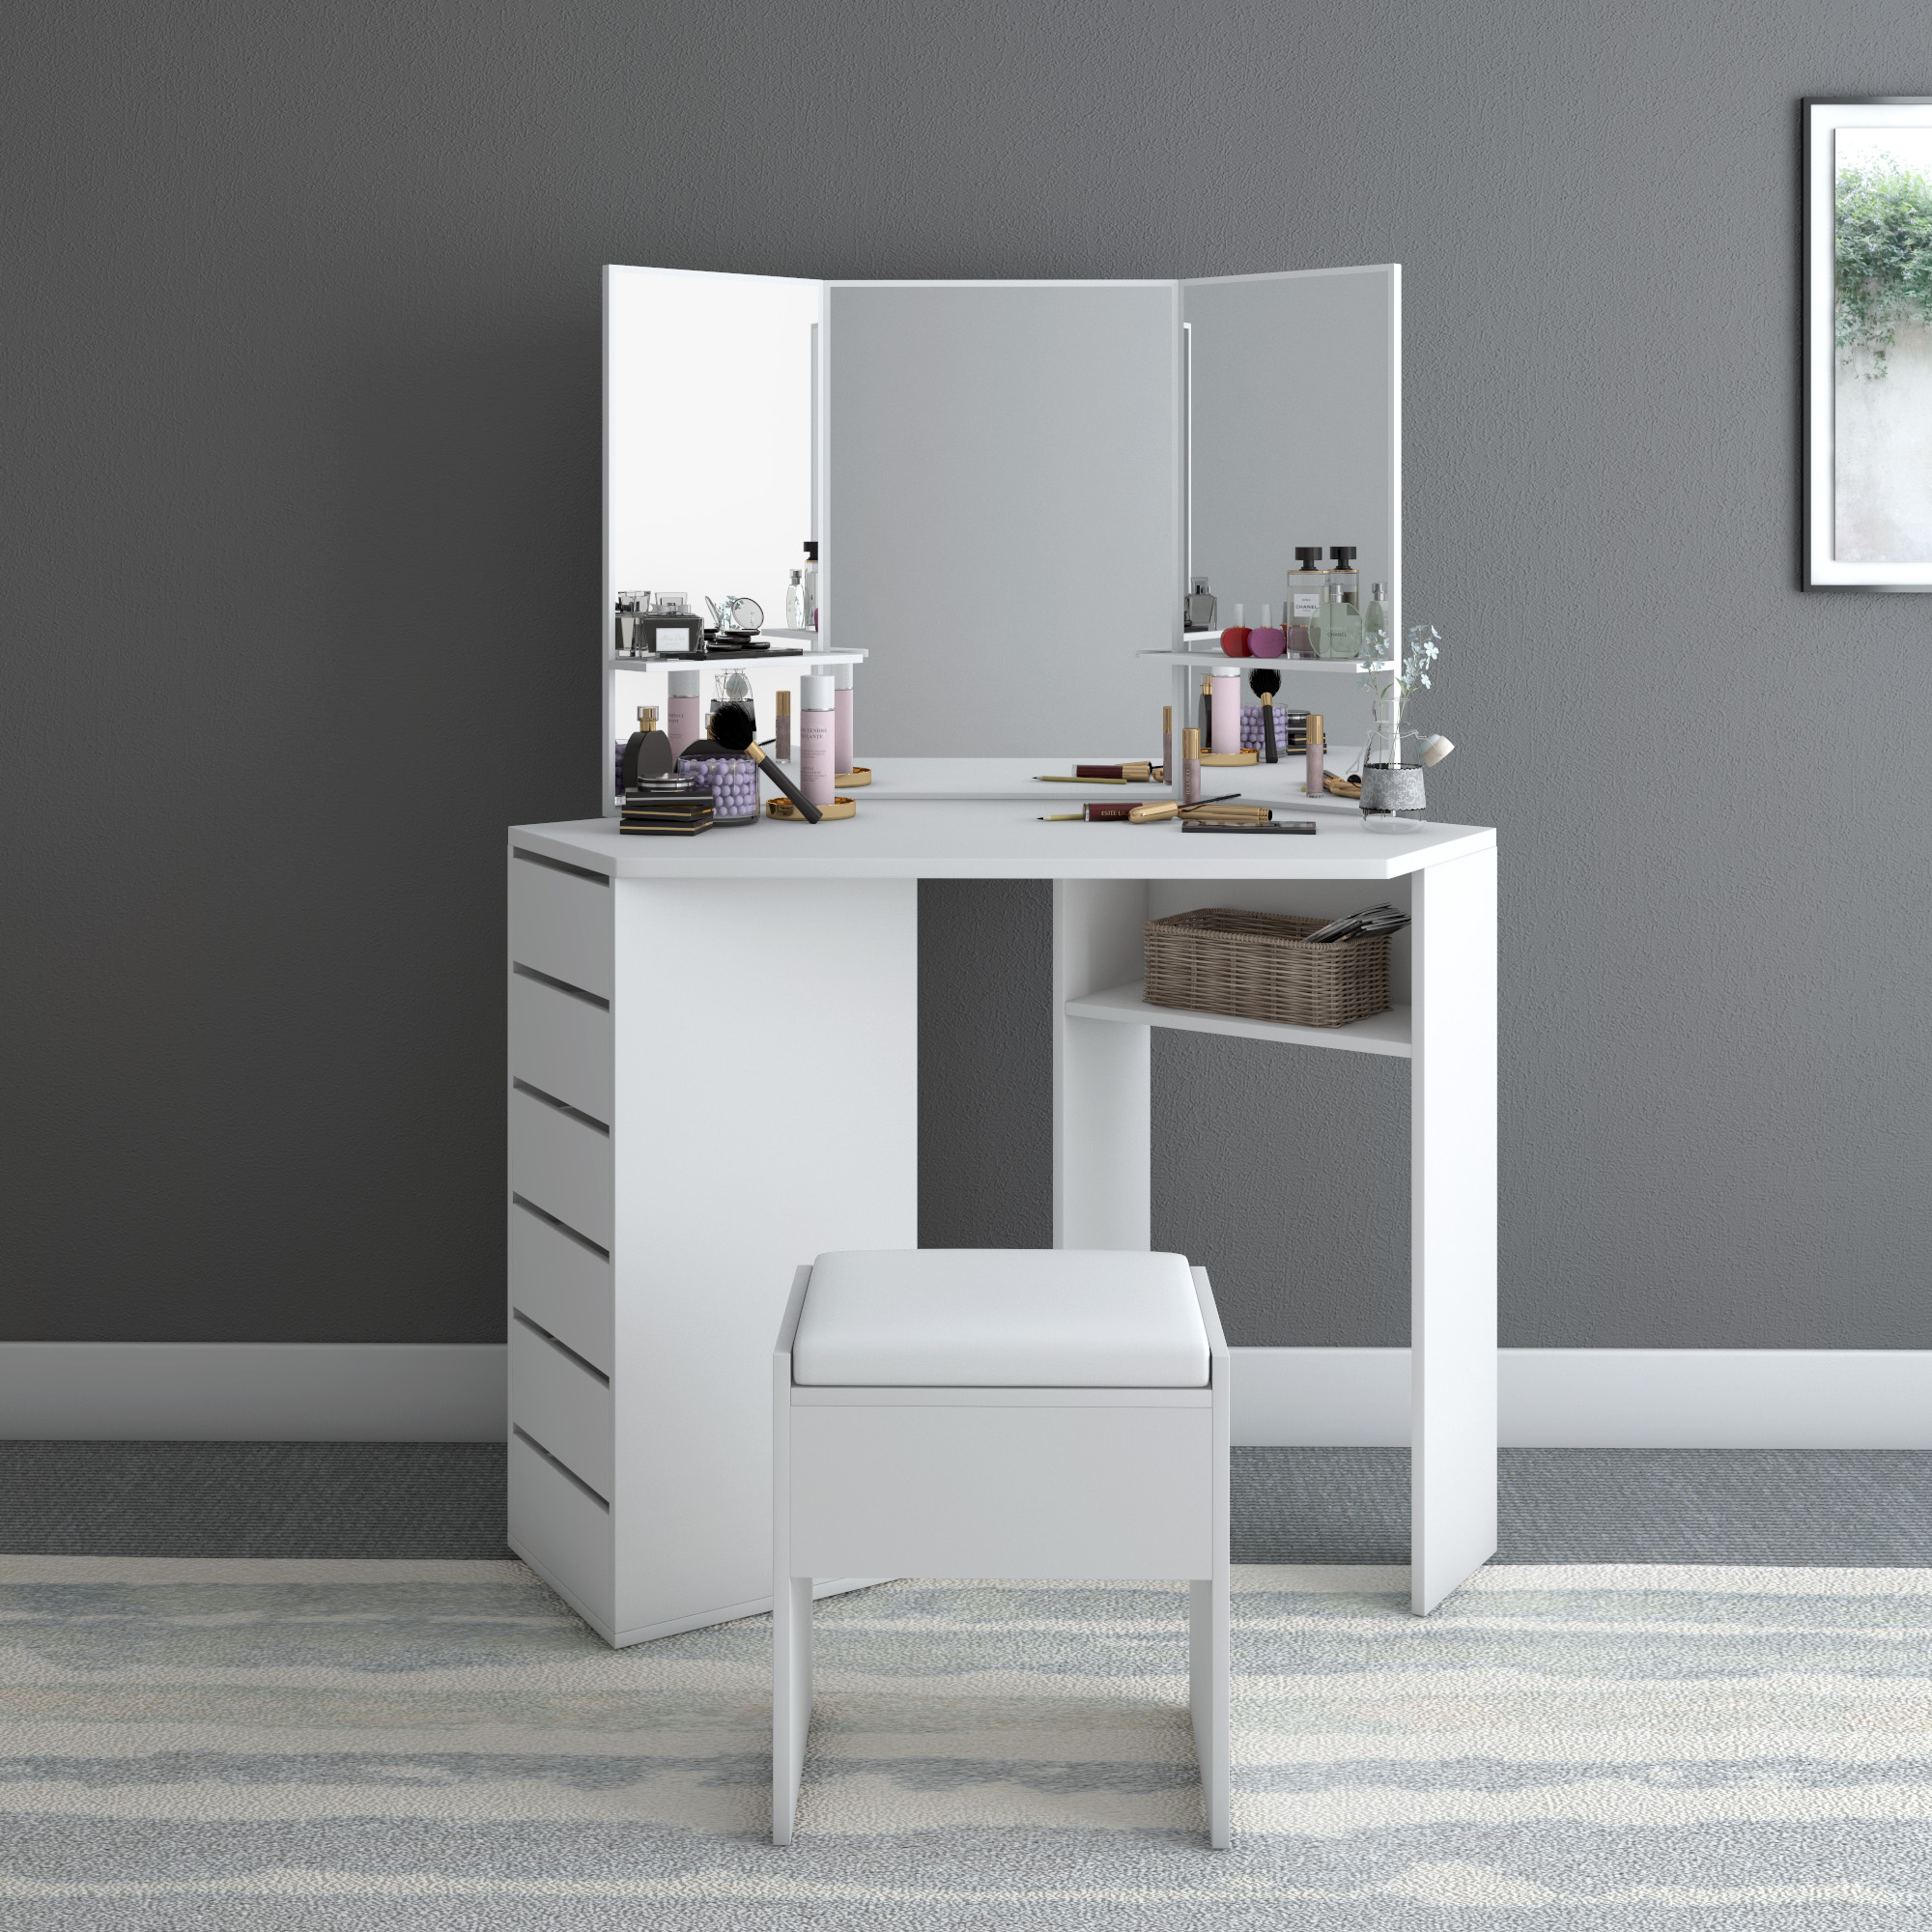 Panana Modern Corner Dressing Table Makeup Curved Mirror With Stool Shape Home Working Wtudy Desk